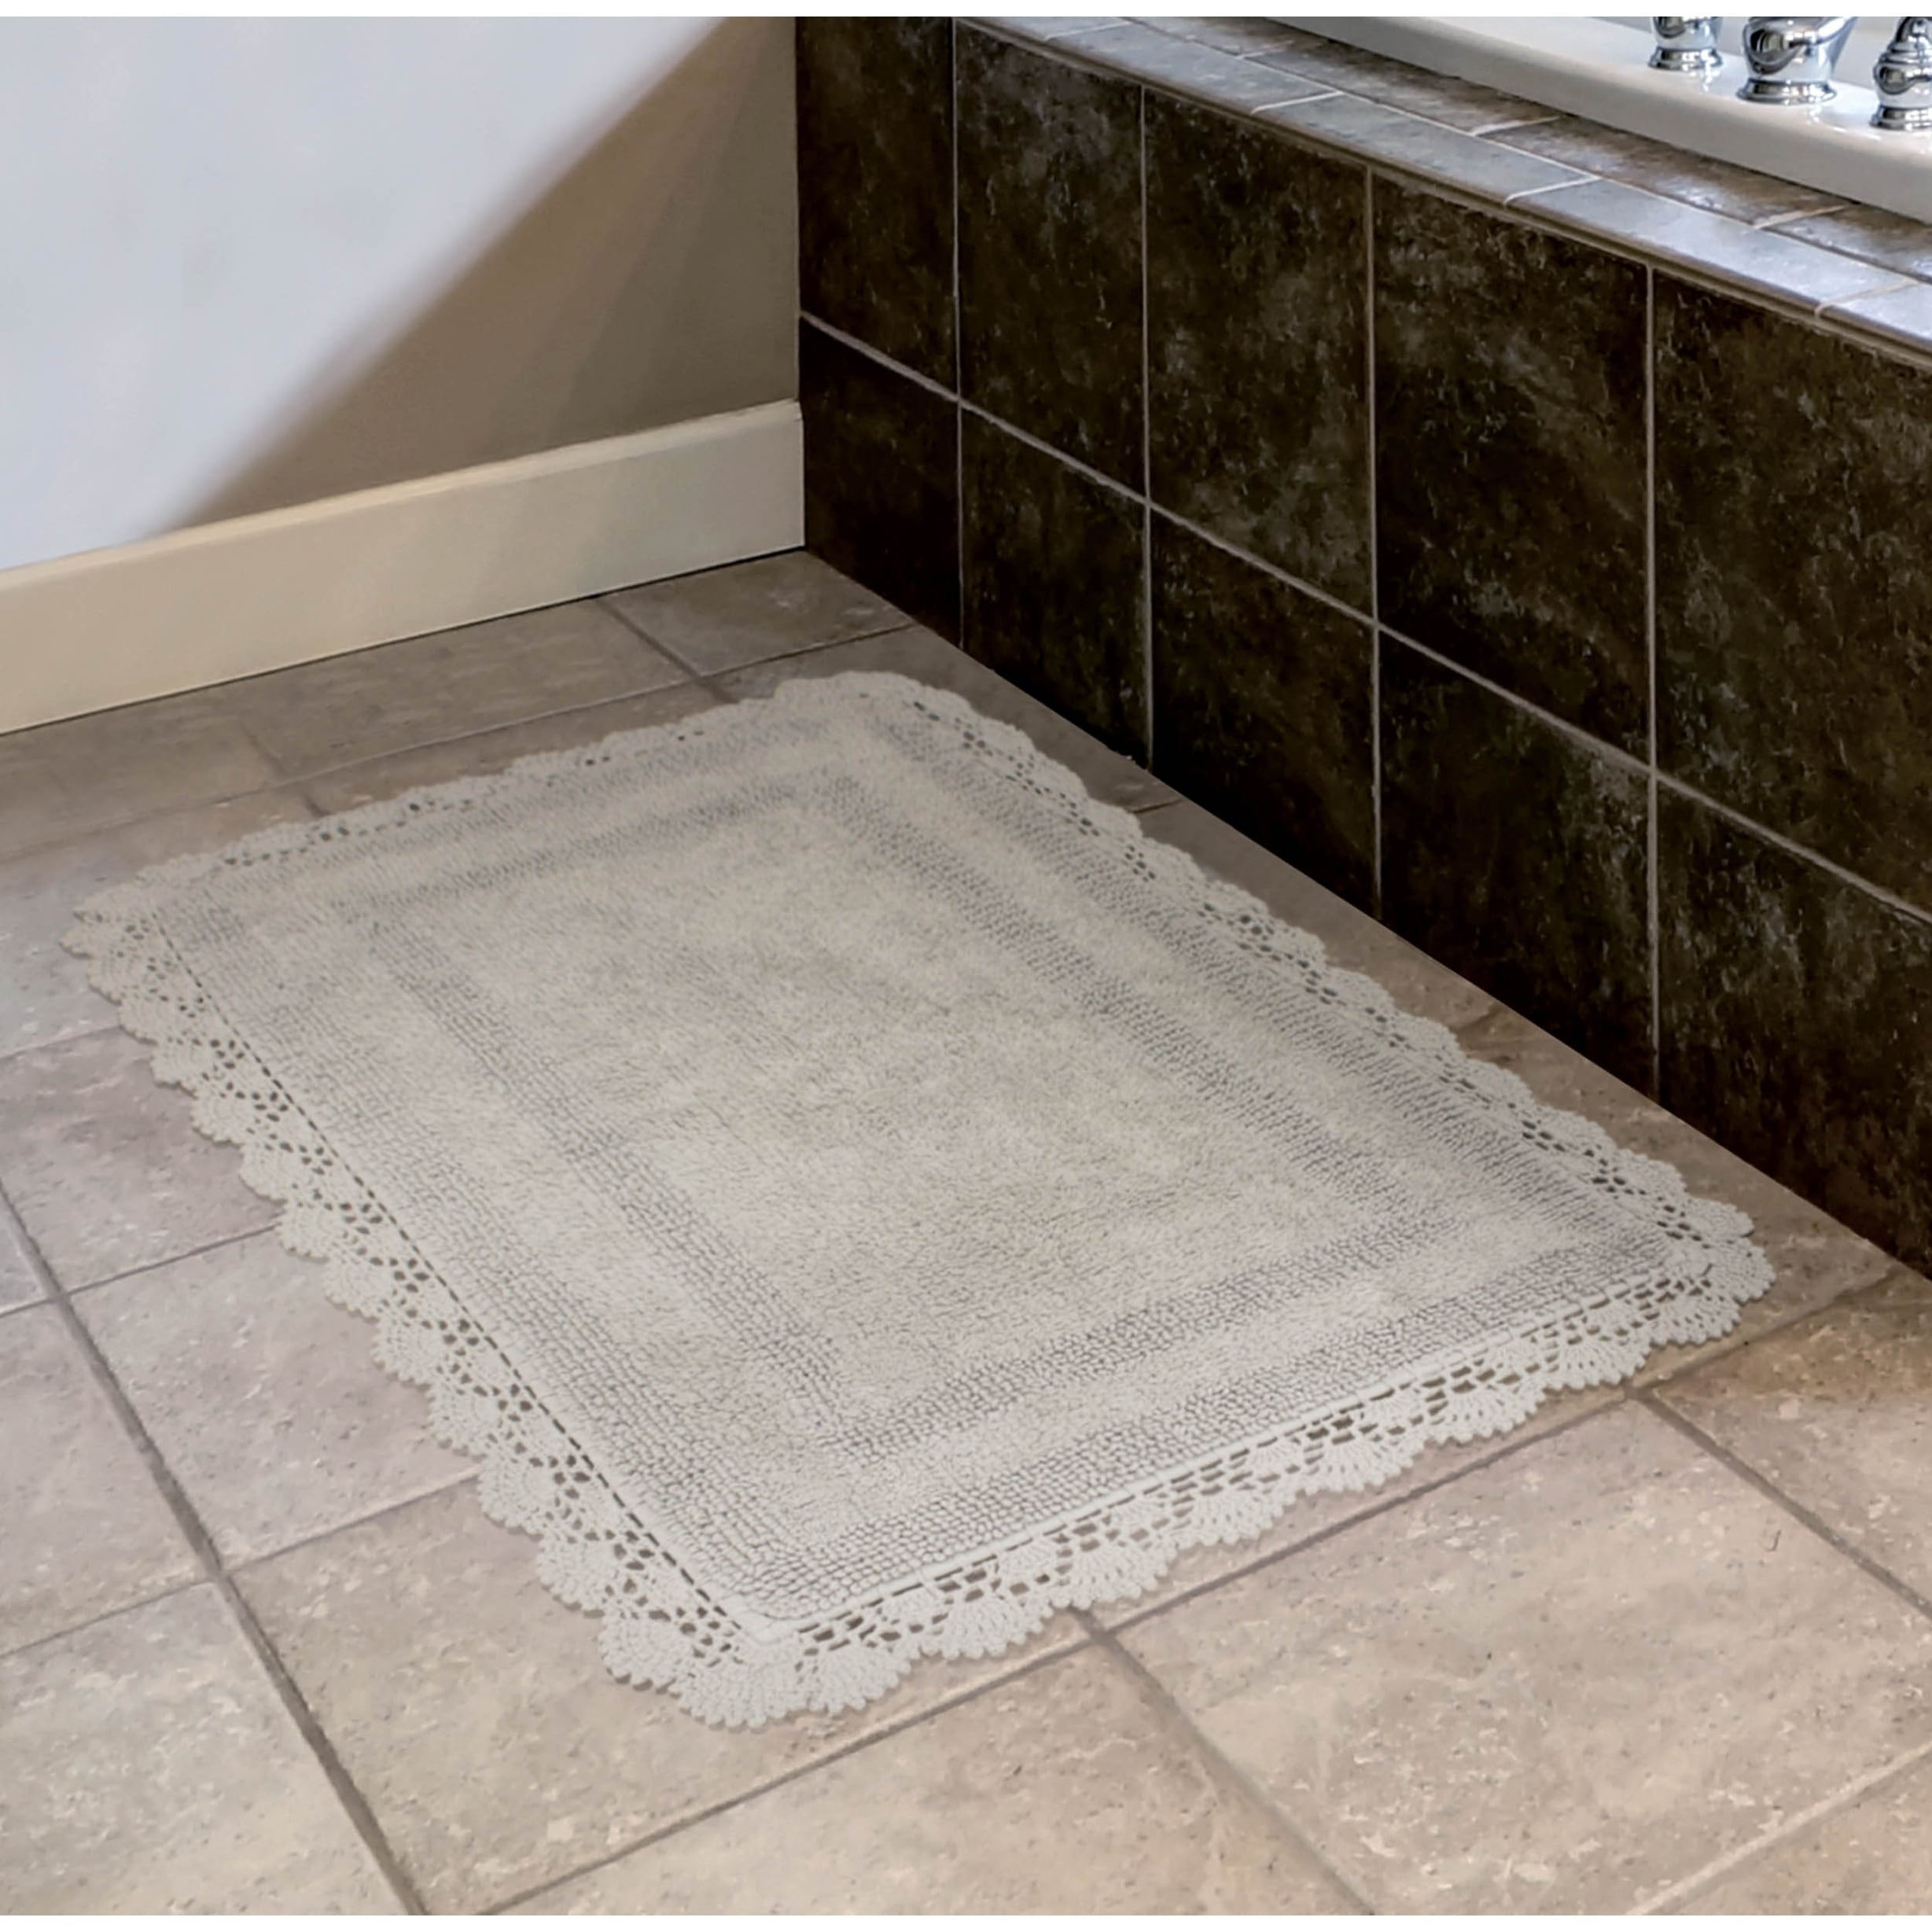 Laura ashley reversible cotton crochet 2 piece bath rug set free laura ashley reversible cotton crochet 2 piece bath rug set free shipping on orders over 45 overstock 23967802 dailygadgetfo Choice Image